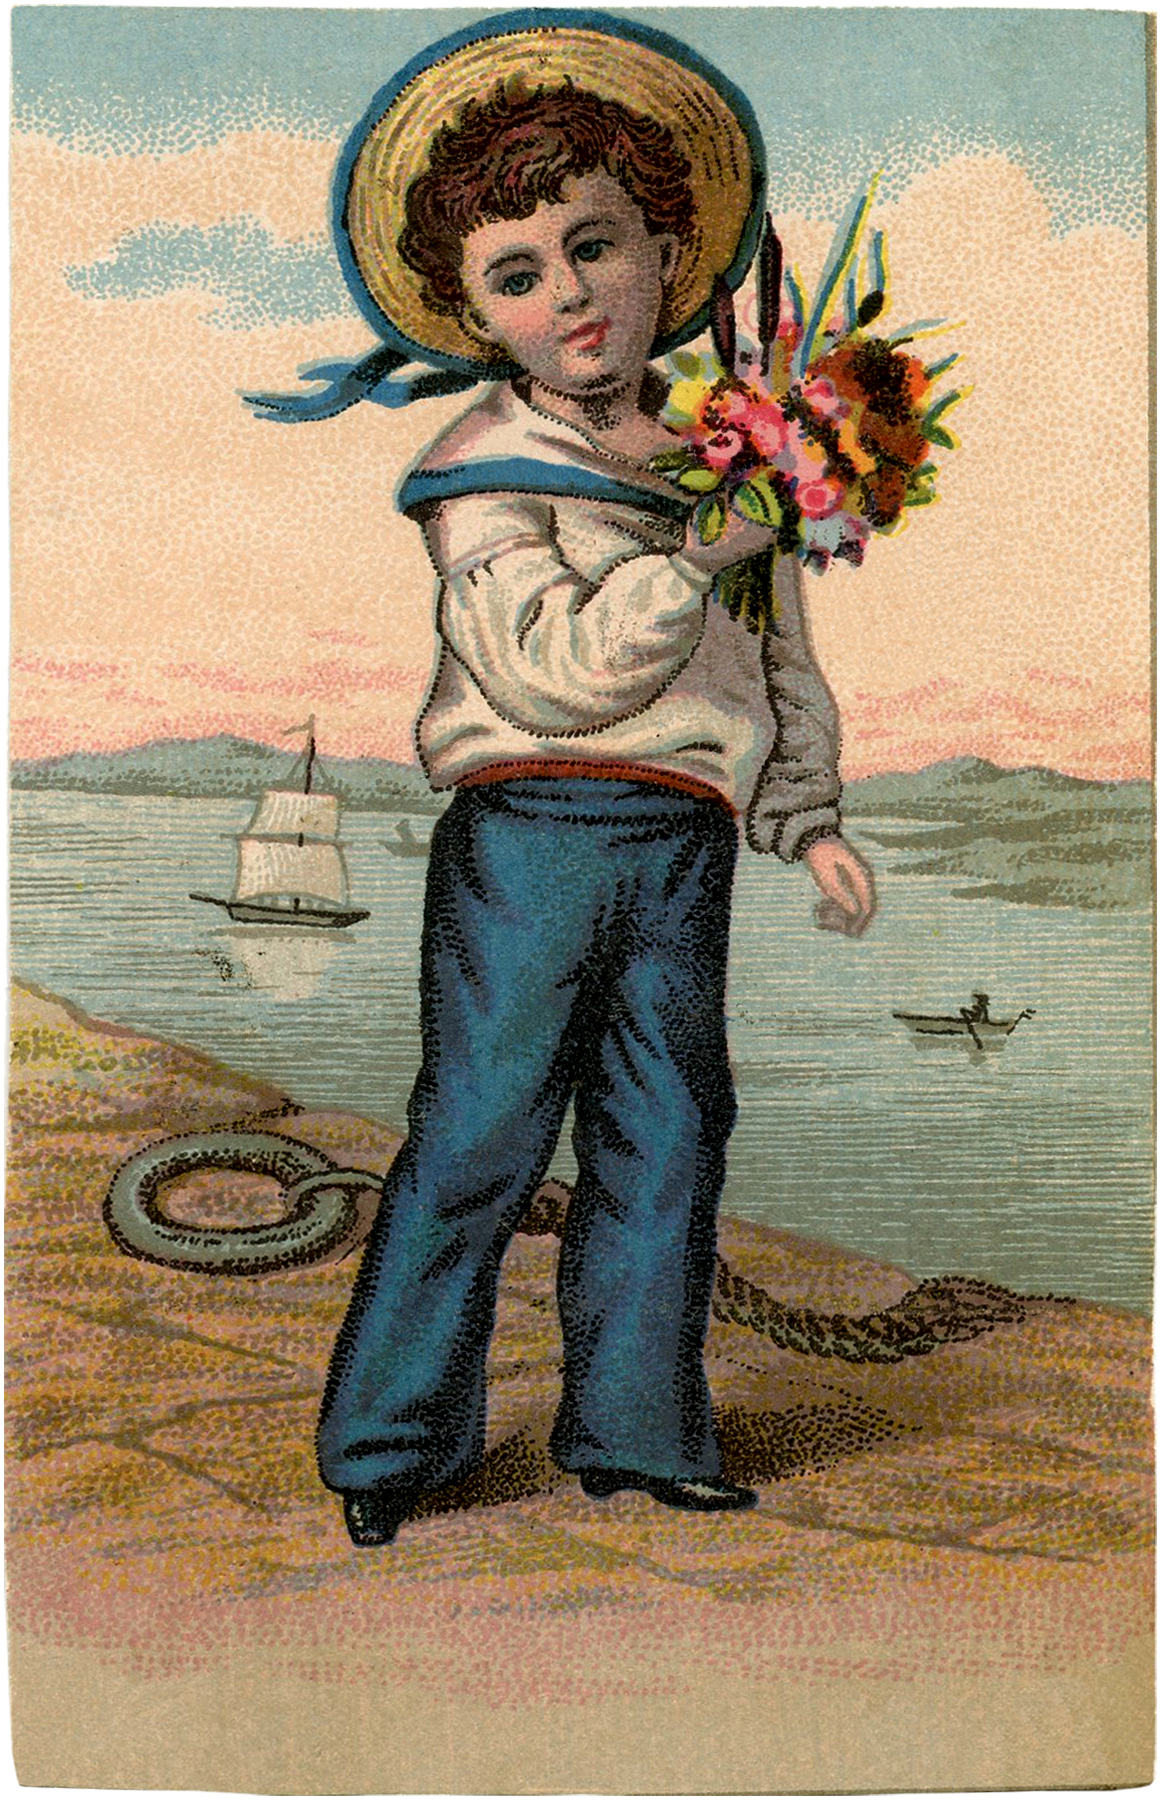 Sweet Vintage Sailor Boy Picture! - The Graphics Fairy: https://thegraphicsfairy.com/sweet-vintage-sailor-boy-picture/